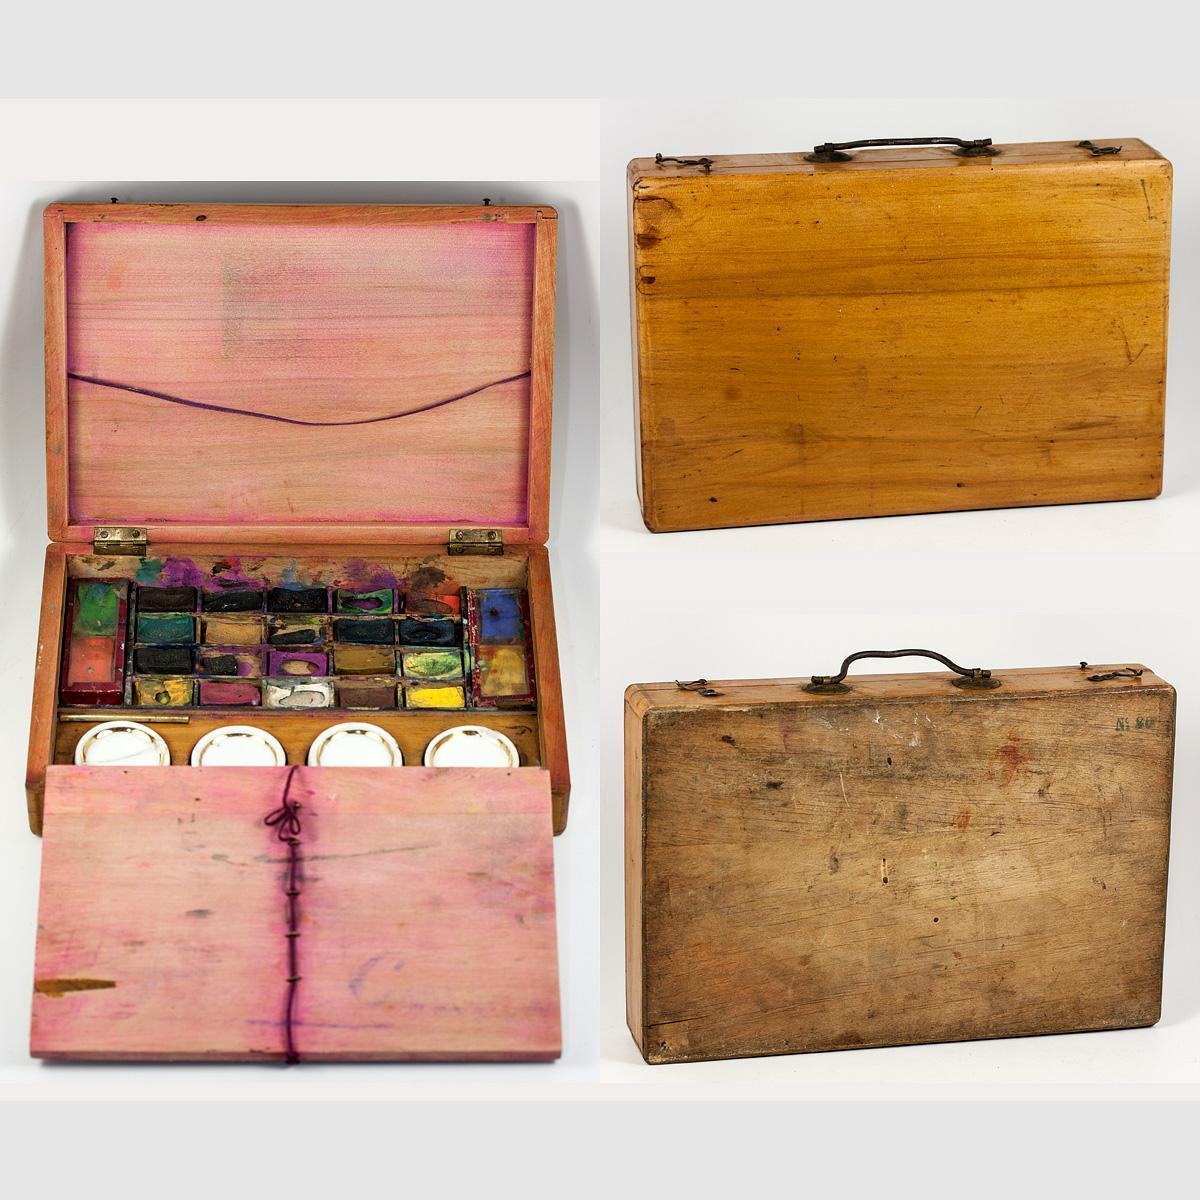 Antique French Watercolorist Paint Box, 1878 Silver Medal; 1889 Paris Expo Gold Medal